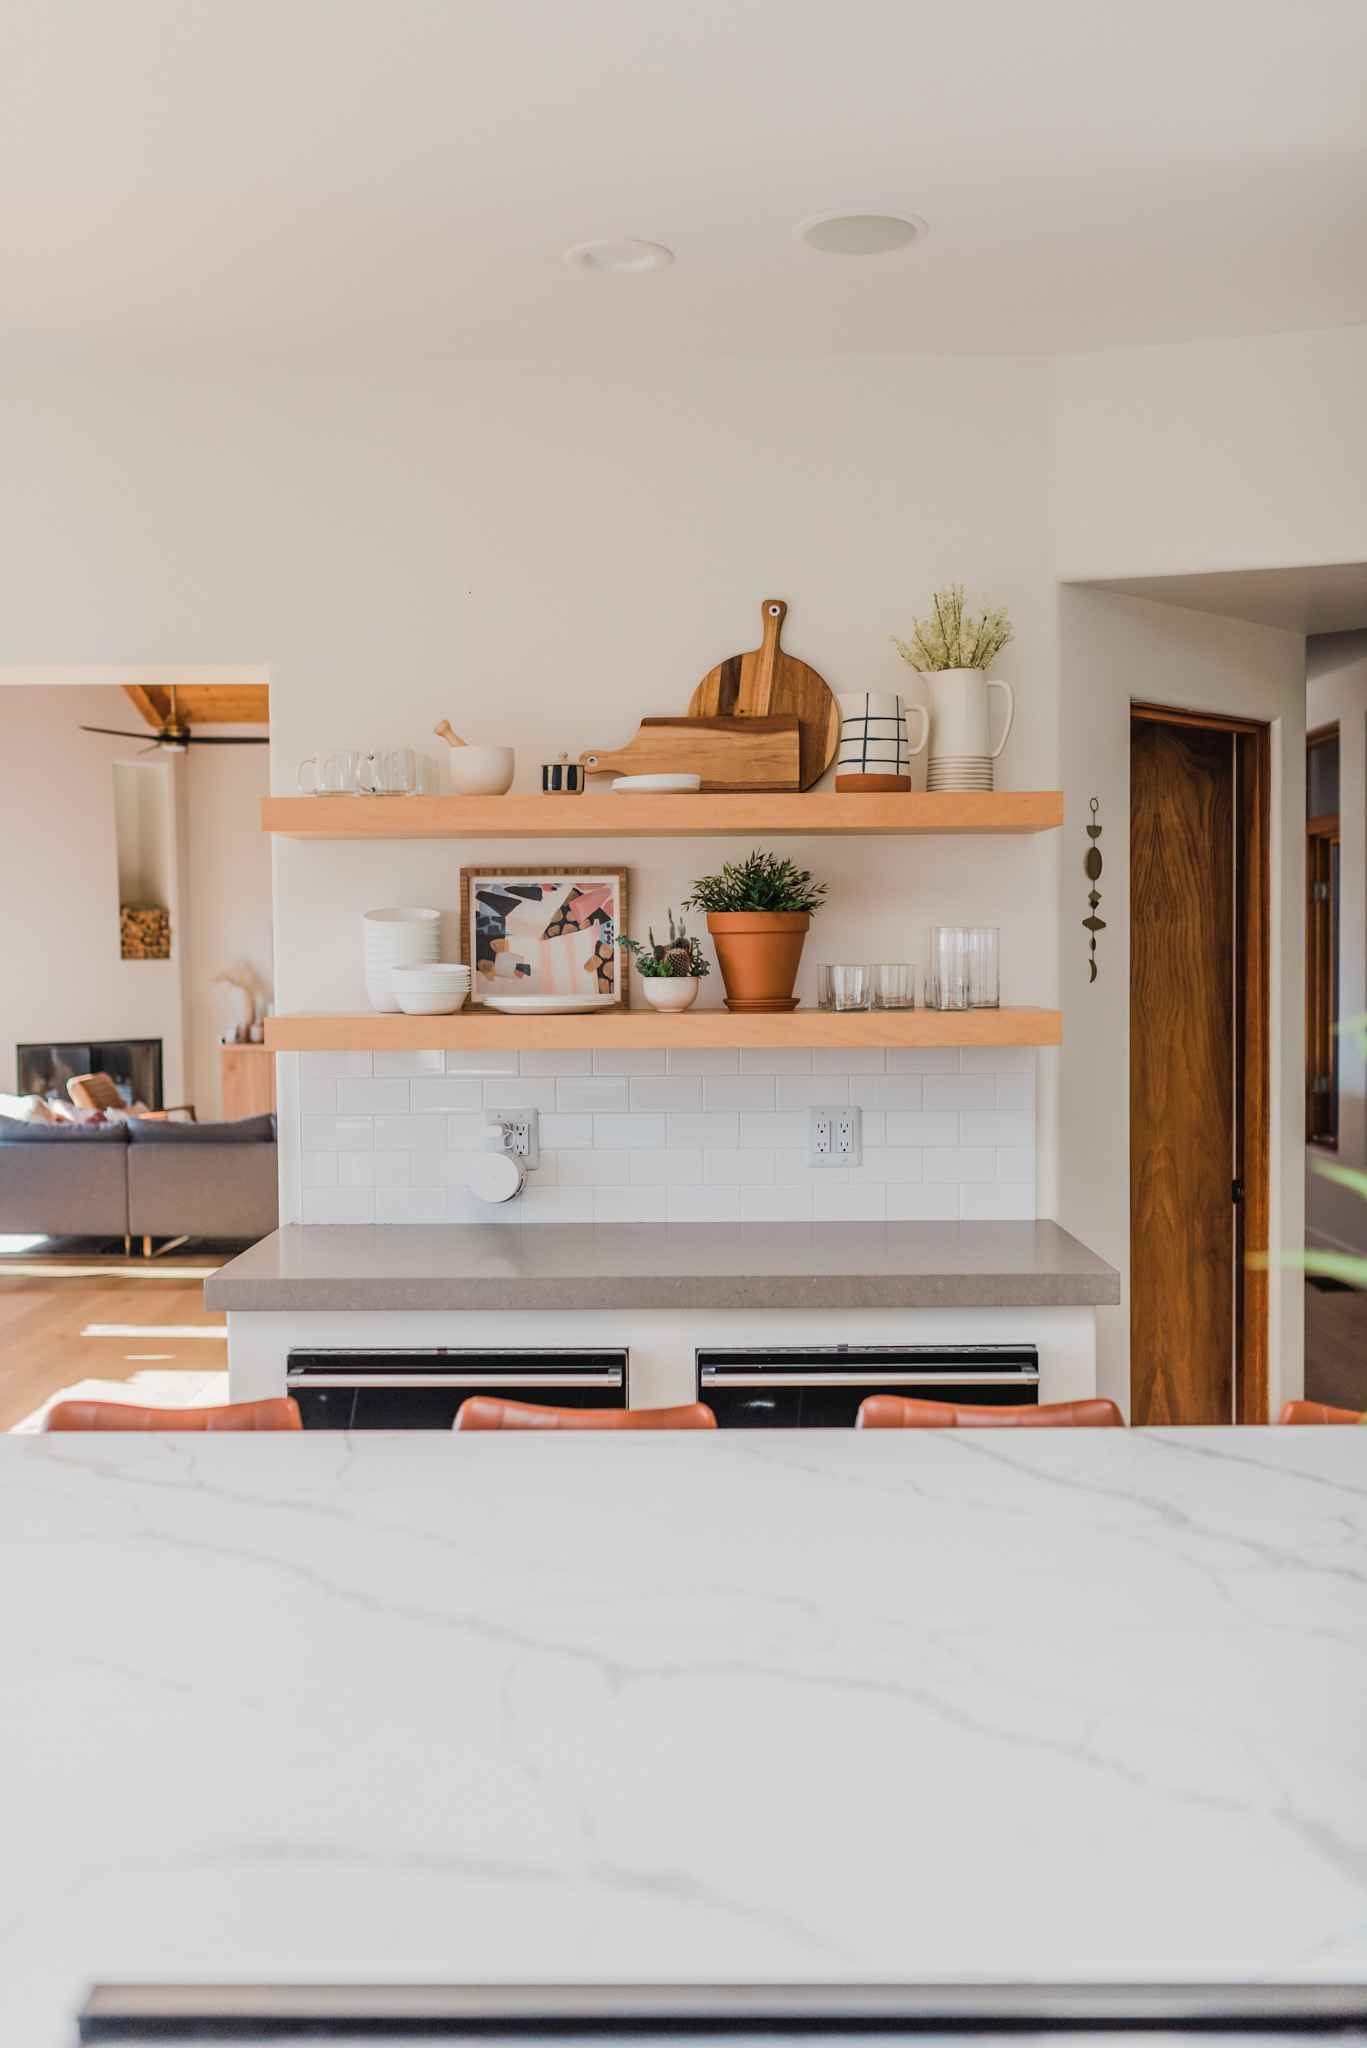 Spring Kitchen Wishlist by popular San Diego life and style blog, Navy Grace: image of a modern kitchen with marble counter tops, gas cooking range, floating wood shelves, and leather bar stools.